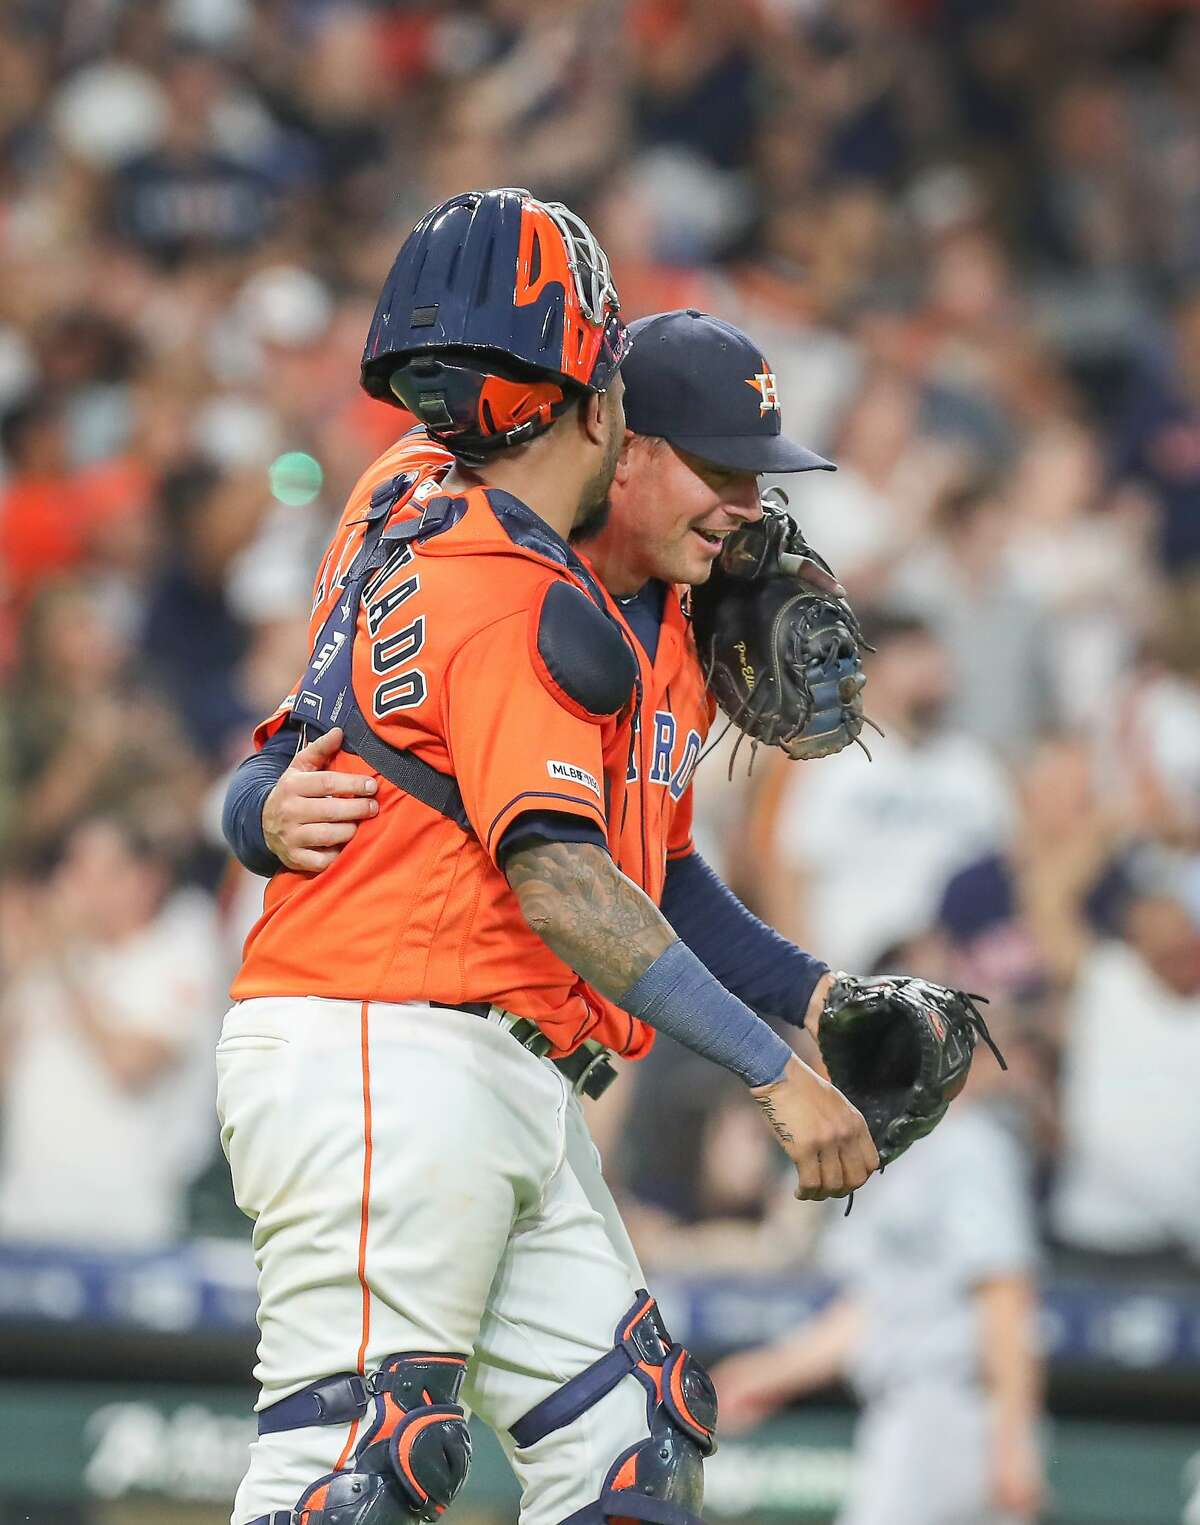 Houston Astros Martin Maldonado hugs Houston Astros relief pitcher Joe Smith (38) after he made the final out during the 9th inning of an MLB baseball game at Minute Maid Park Friday, Aug. 2, 2019, in Houston.